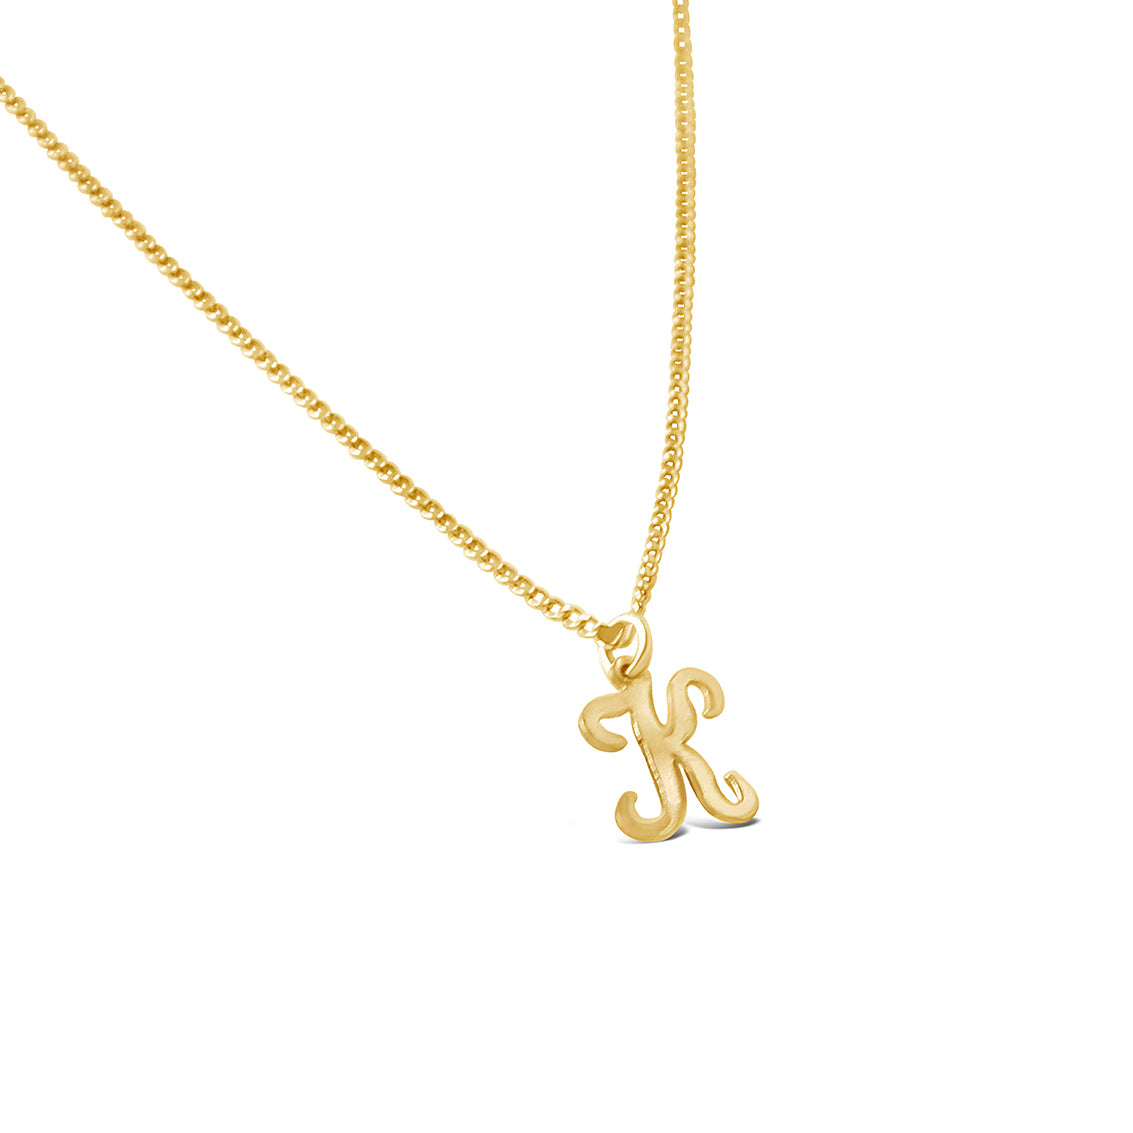 70's Initial Necklace, Gold or Silver